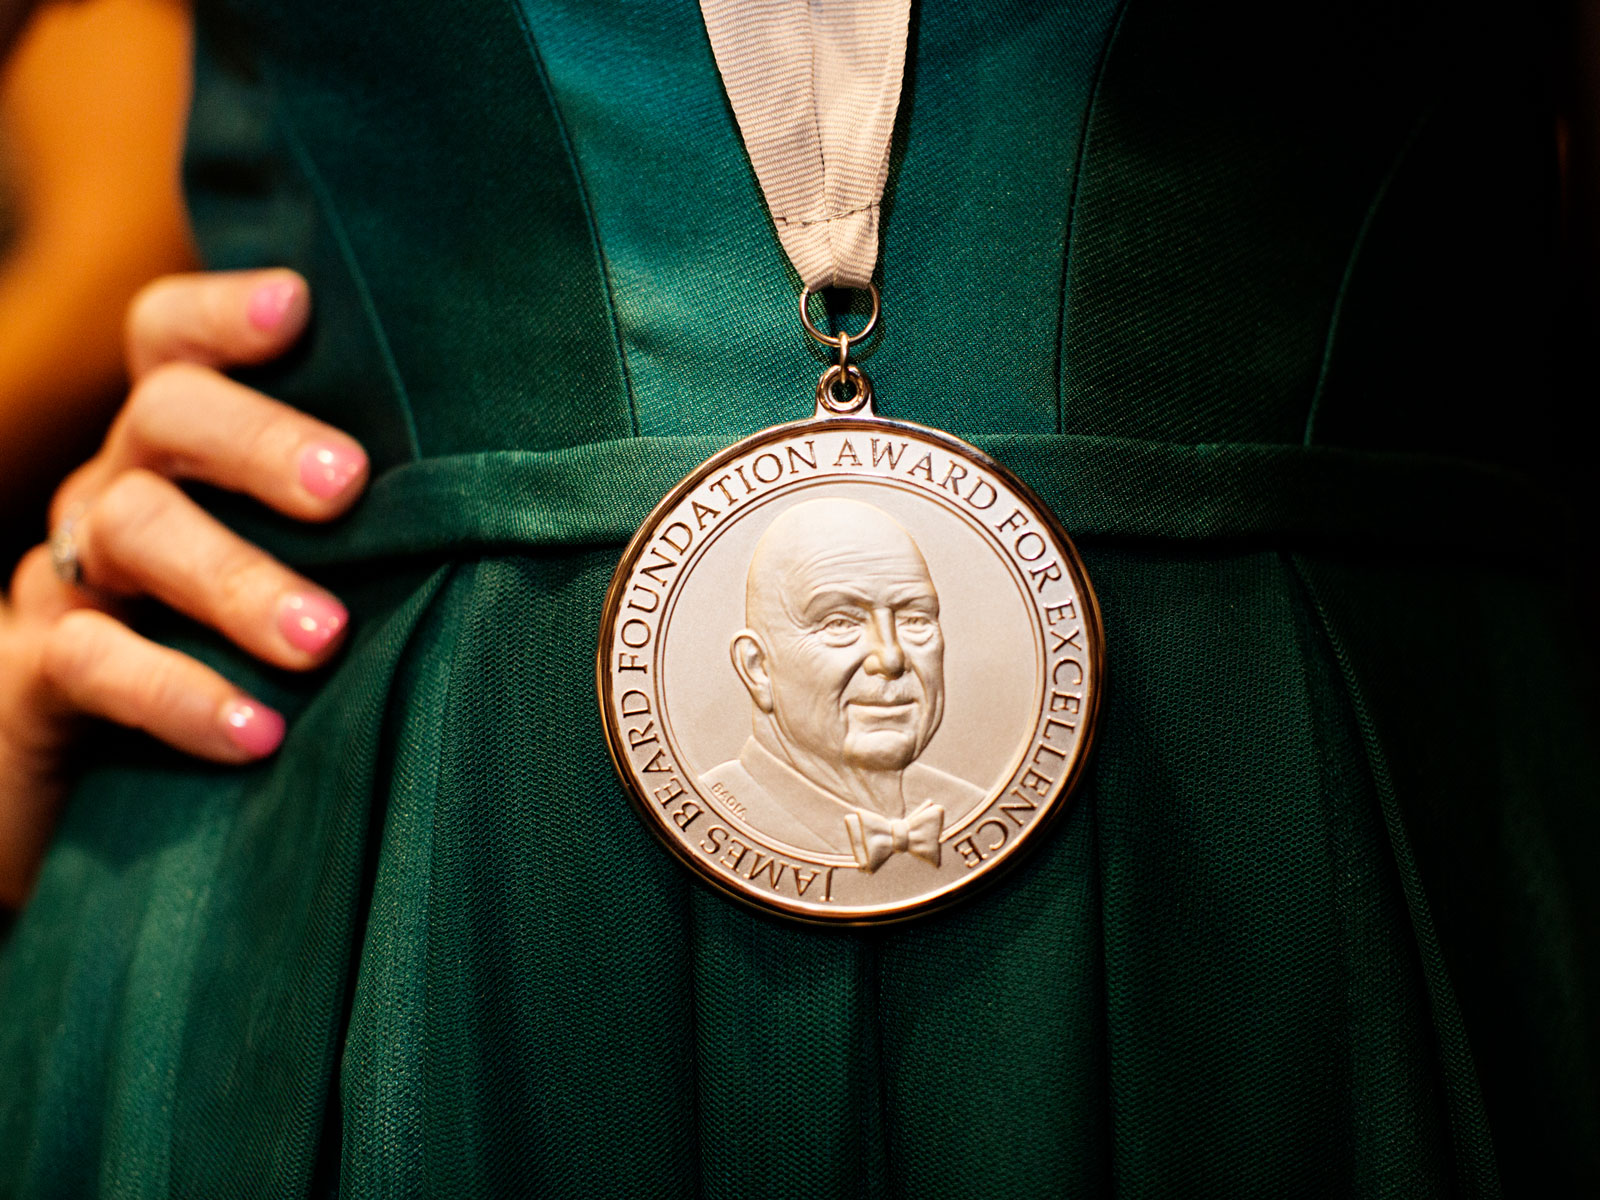 James-Beard-Medal-FT-BLOG0219.jpg